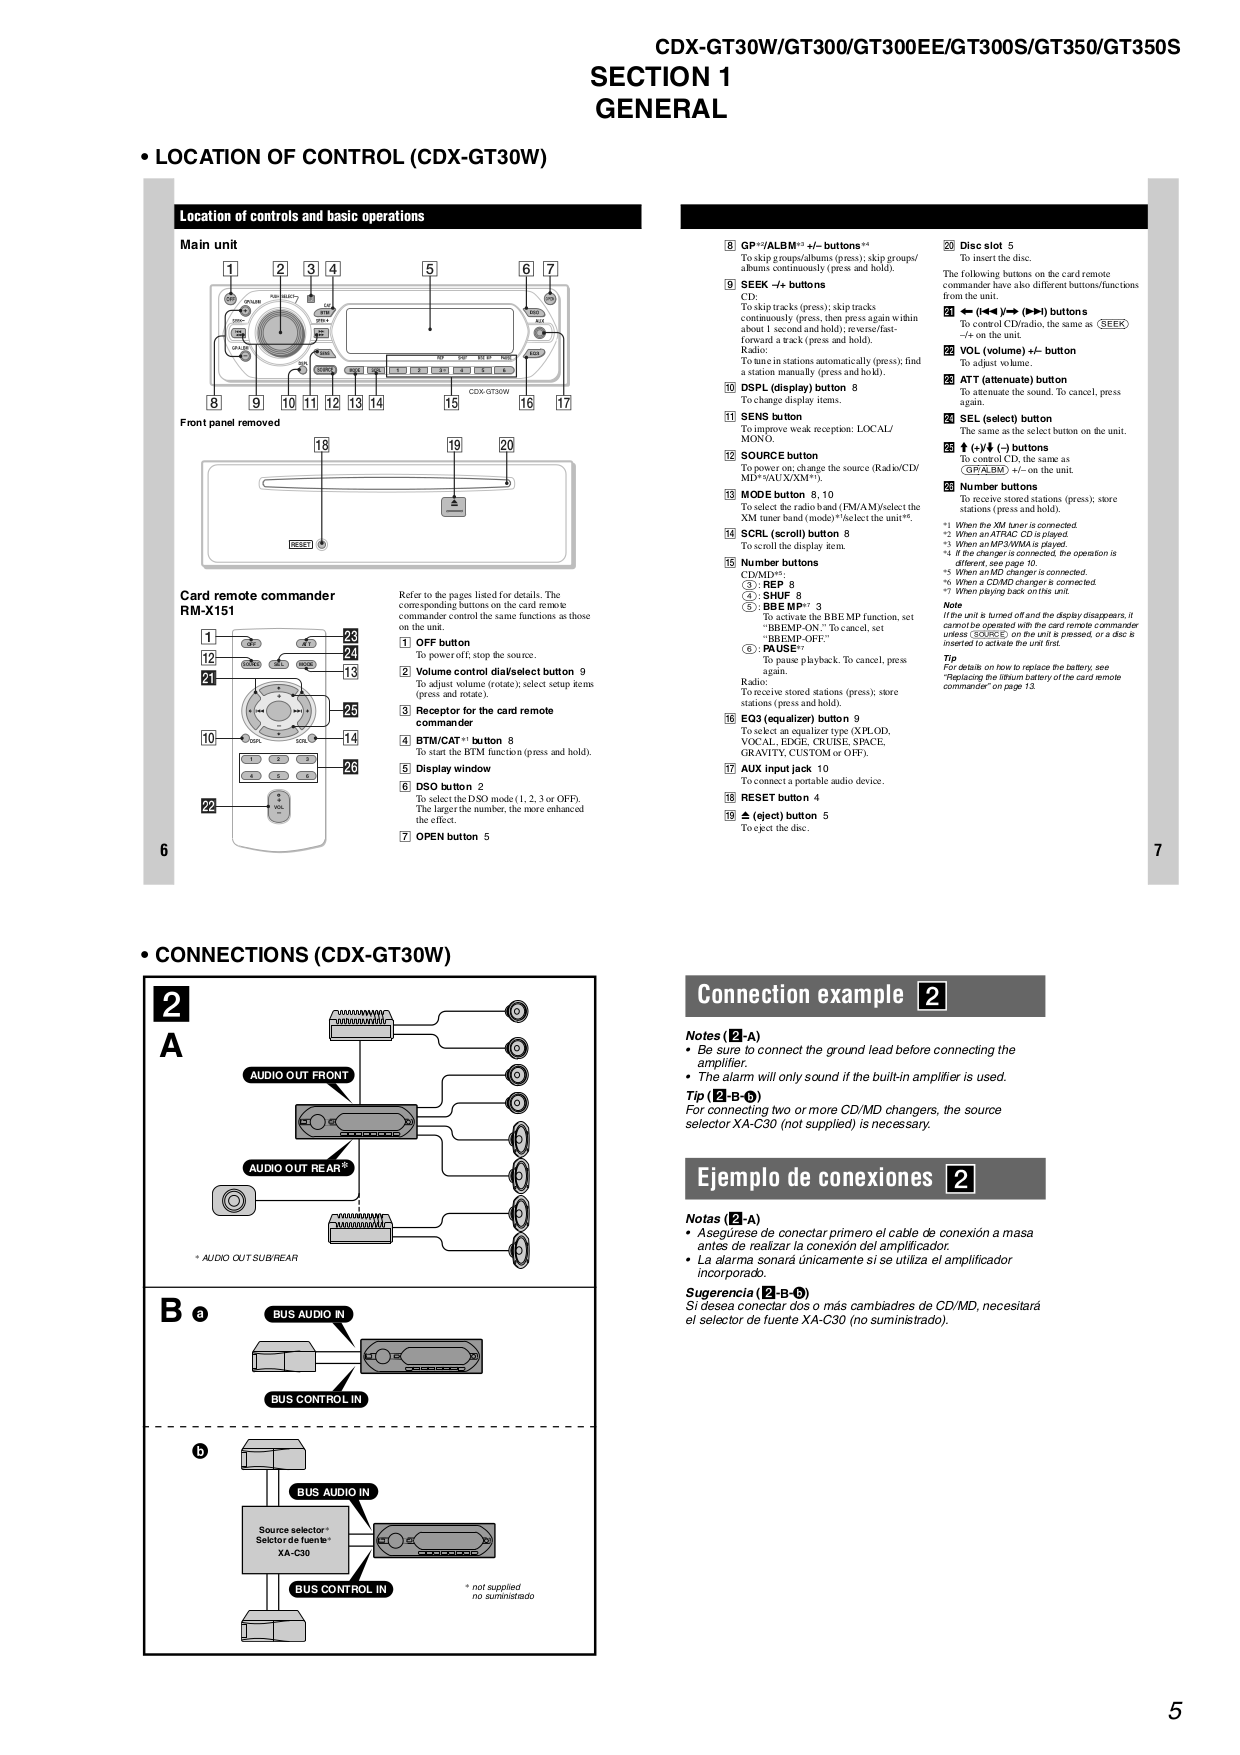 Wiring Diagram For Sony Cdx Gt310 Cdx-Gt710 Wiring Diagram